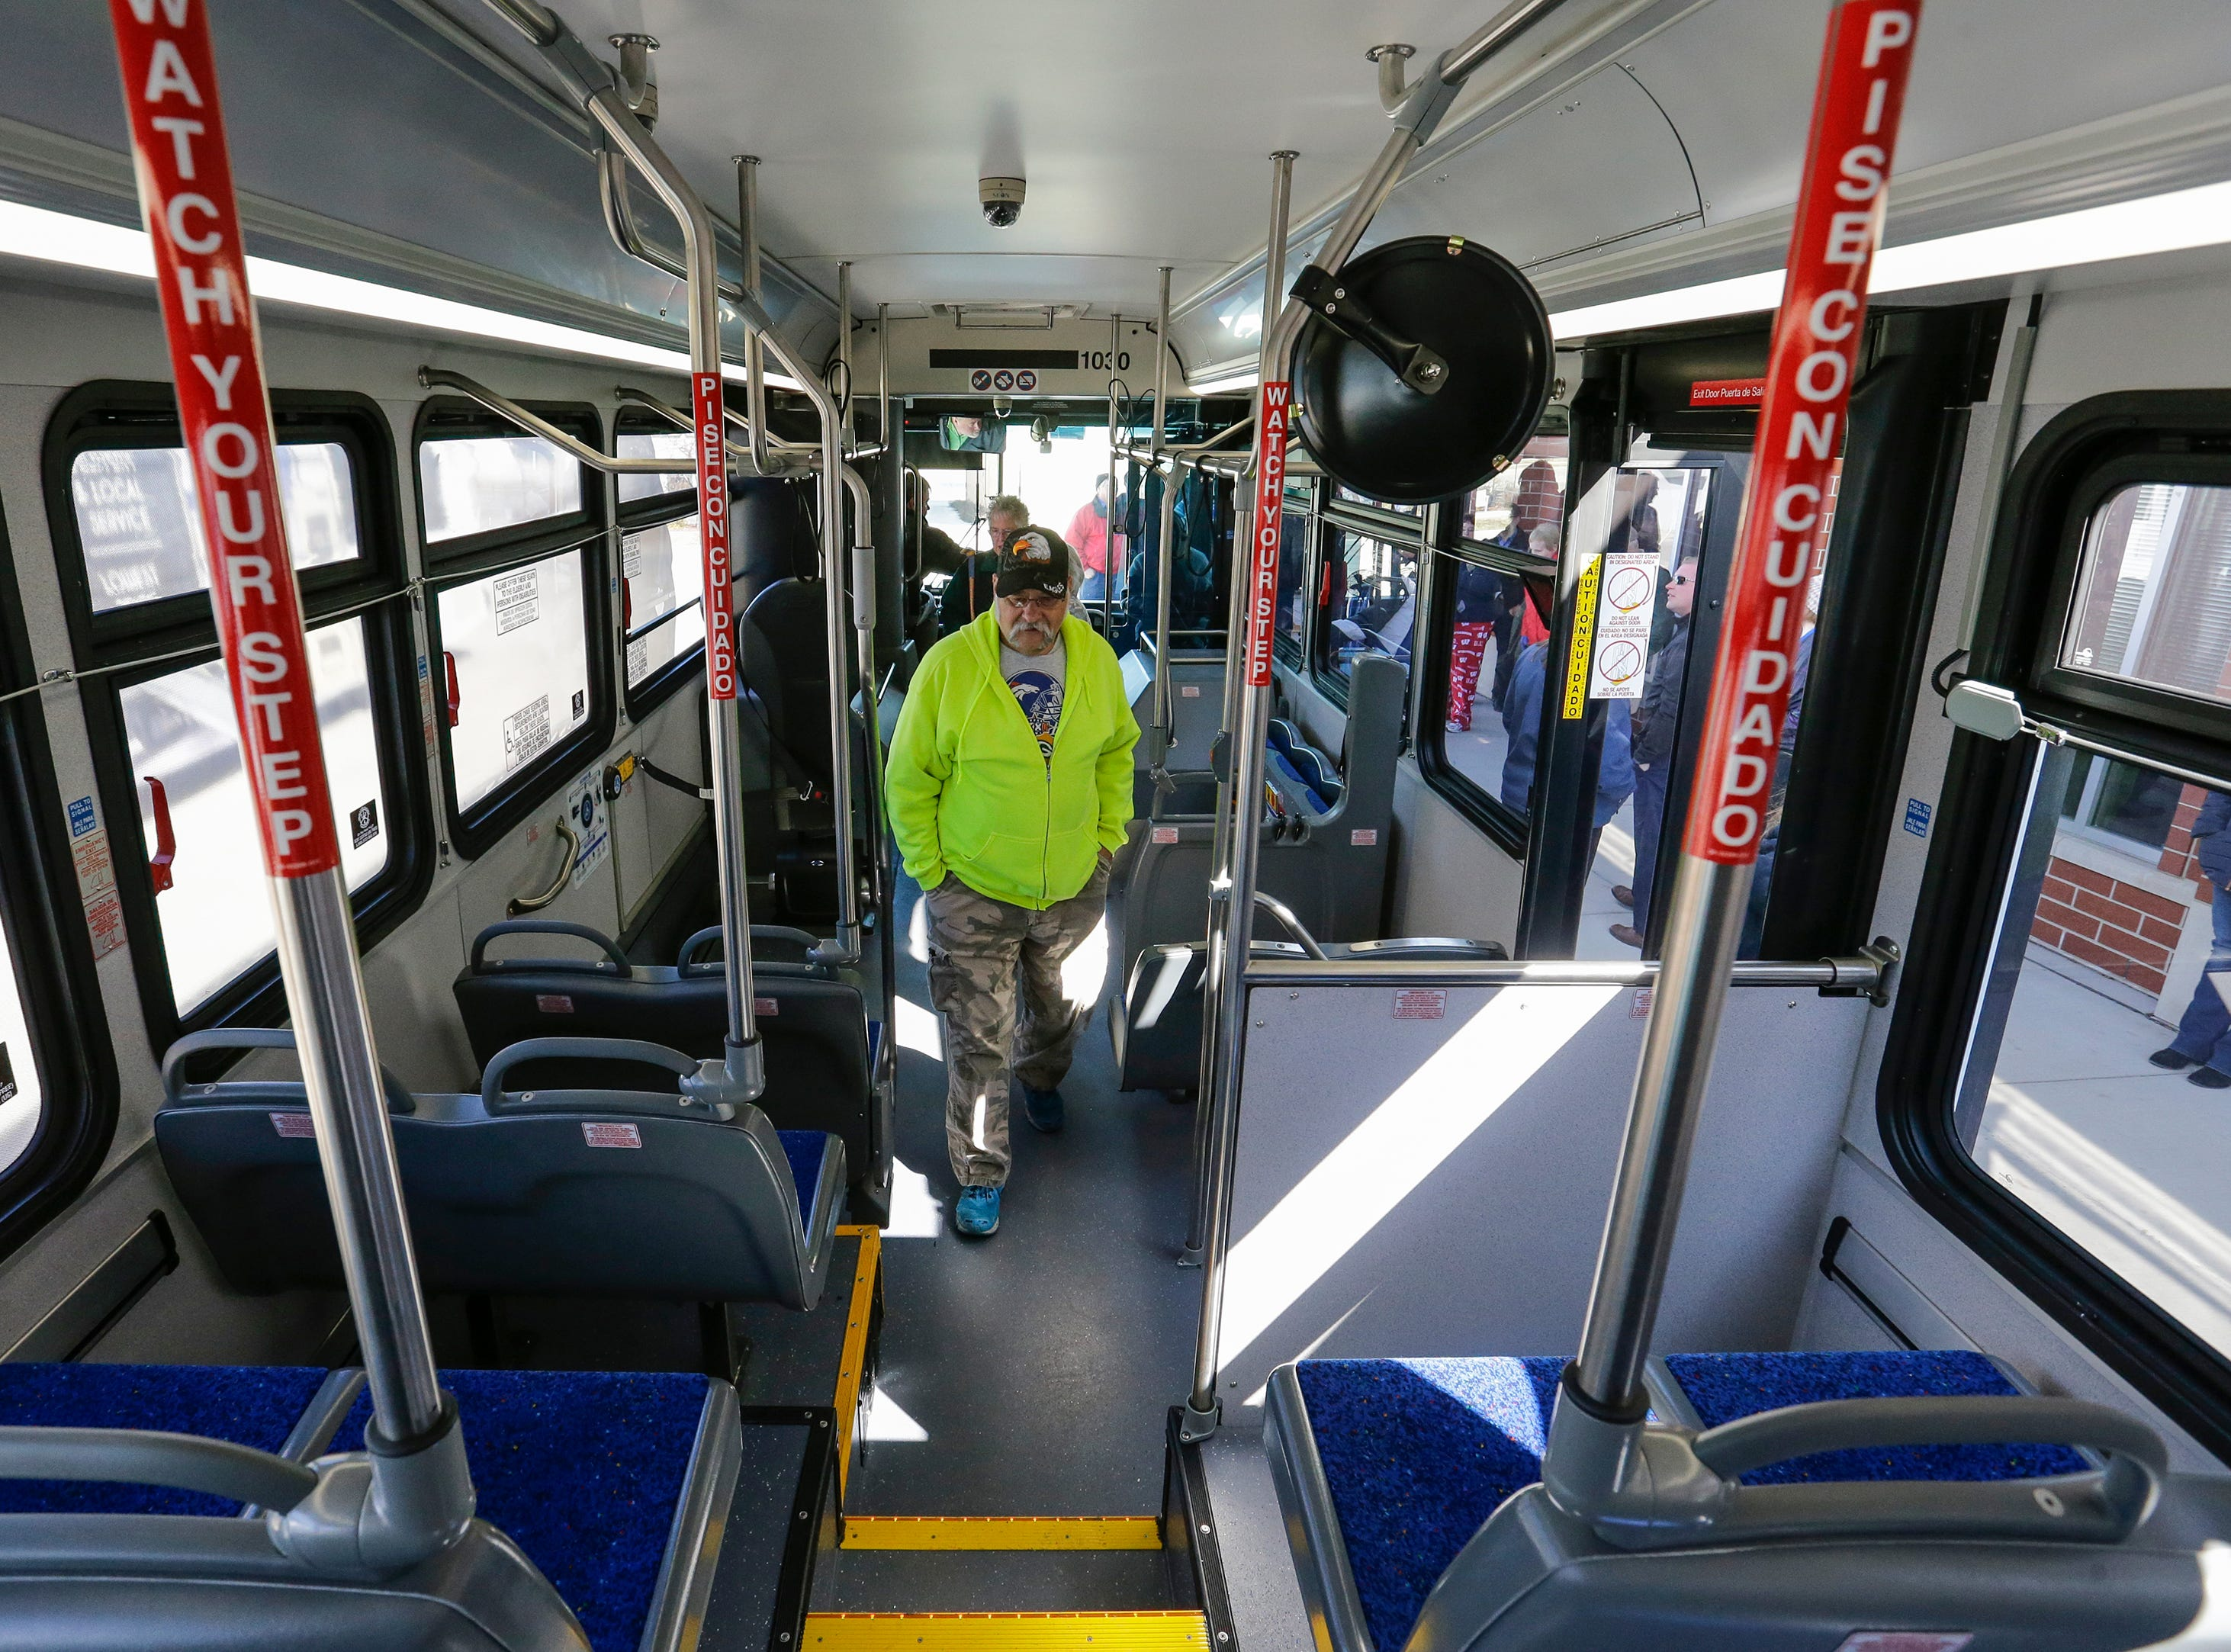 People tour a new city bus commissioned for Maritime Metro Transit Monday, March 25, 2019, in Manitowoc, Wis. The new buses feature better fuel economy, lower emissions, an updated video surveillance system, an automatic securement system for people with disabilities and the capability to incorporate a real-time transit app for mobile devices which the city hopes to implement in the future. The buses go into service today, replacing old buses with more than 600,000 miles purchased between 2004 and 2005. Joshua Clark/USA TODAY NETWORK-Wisconsin